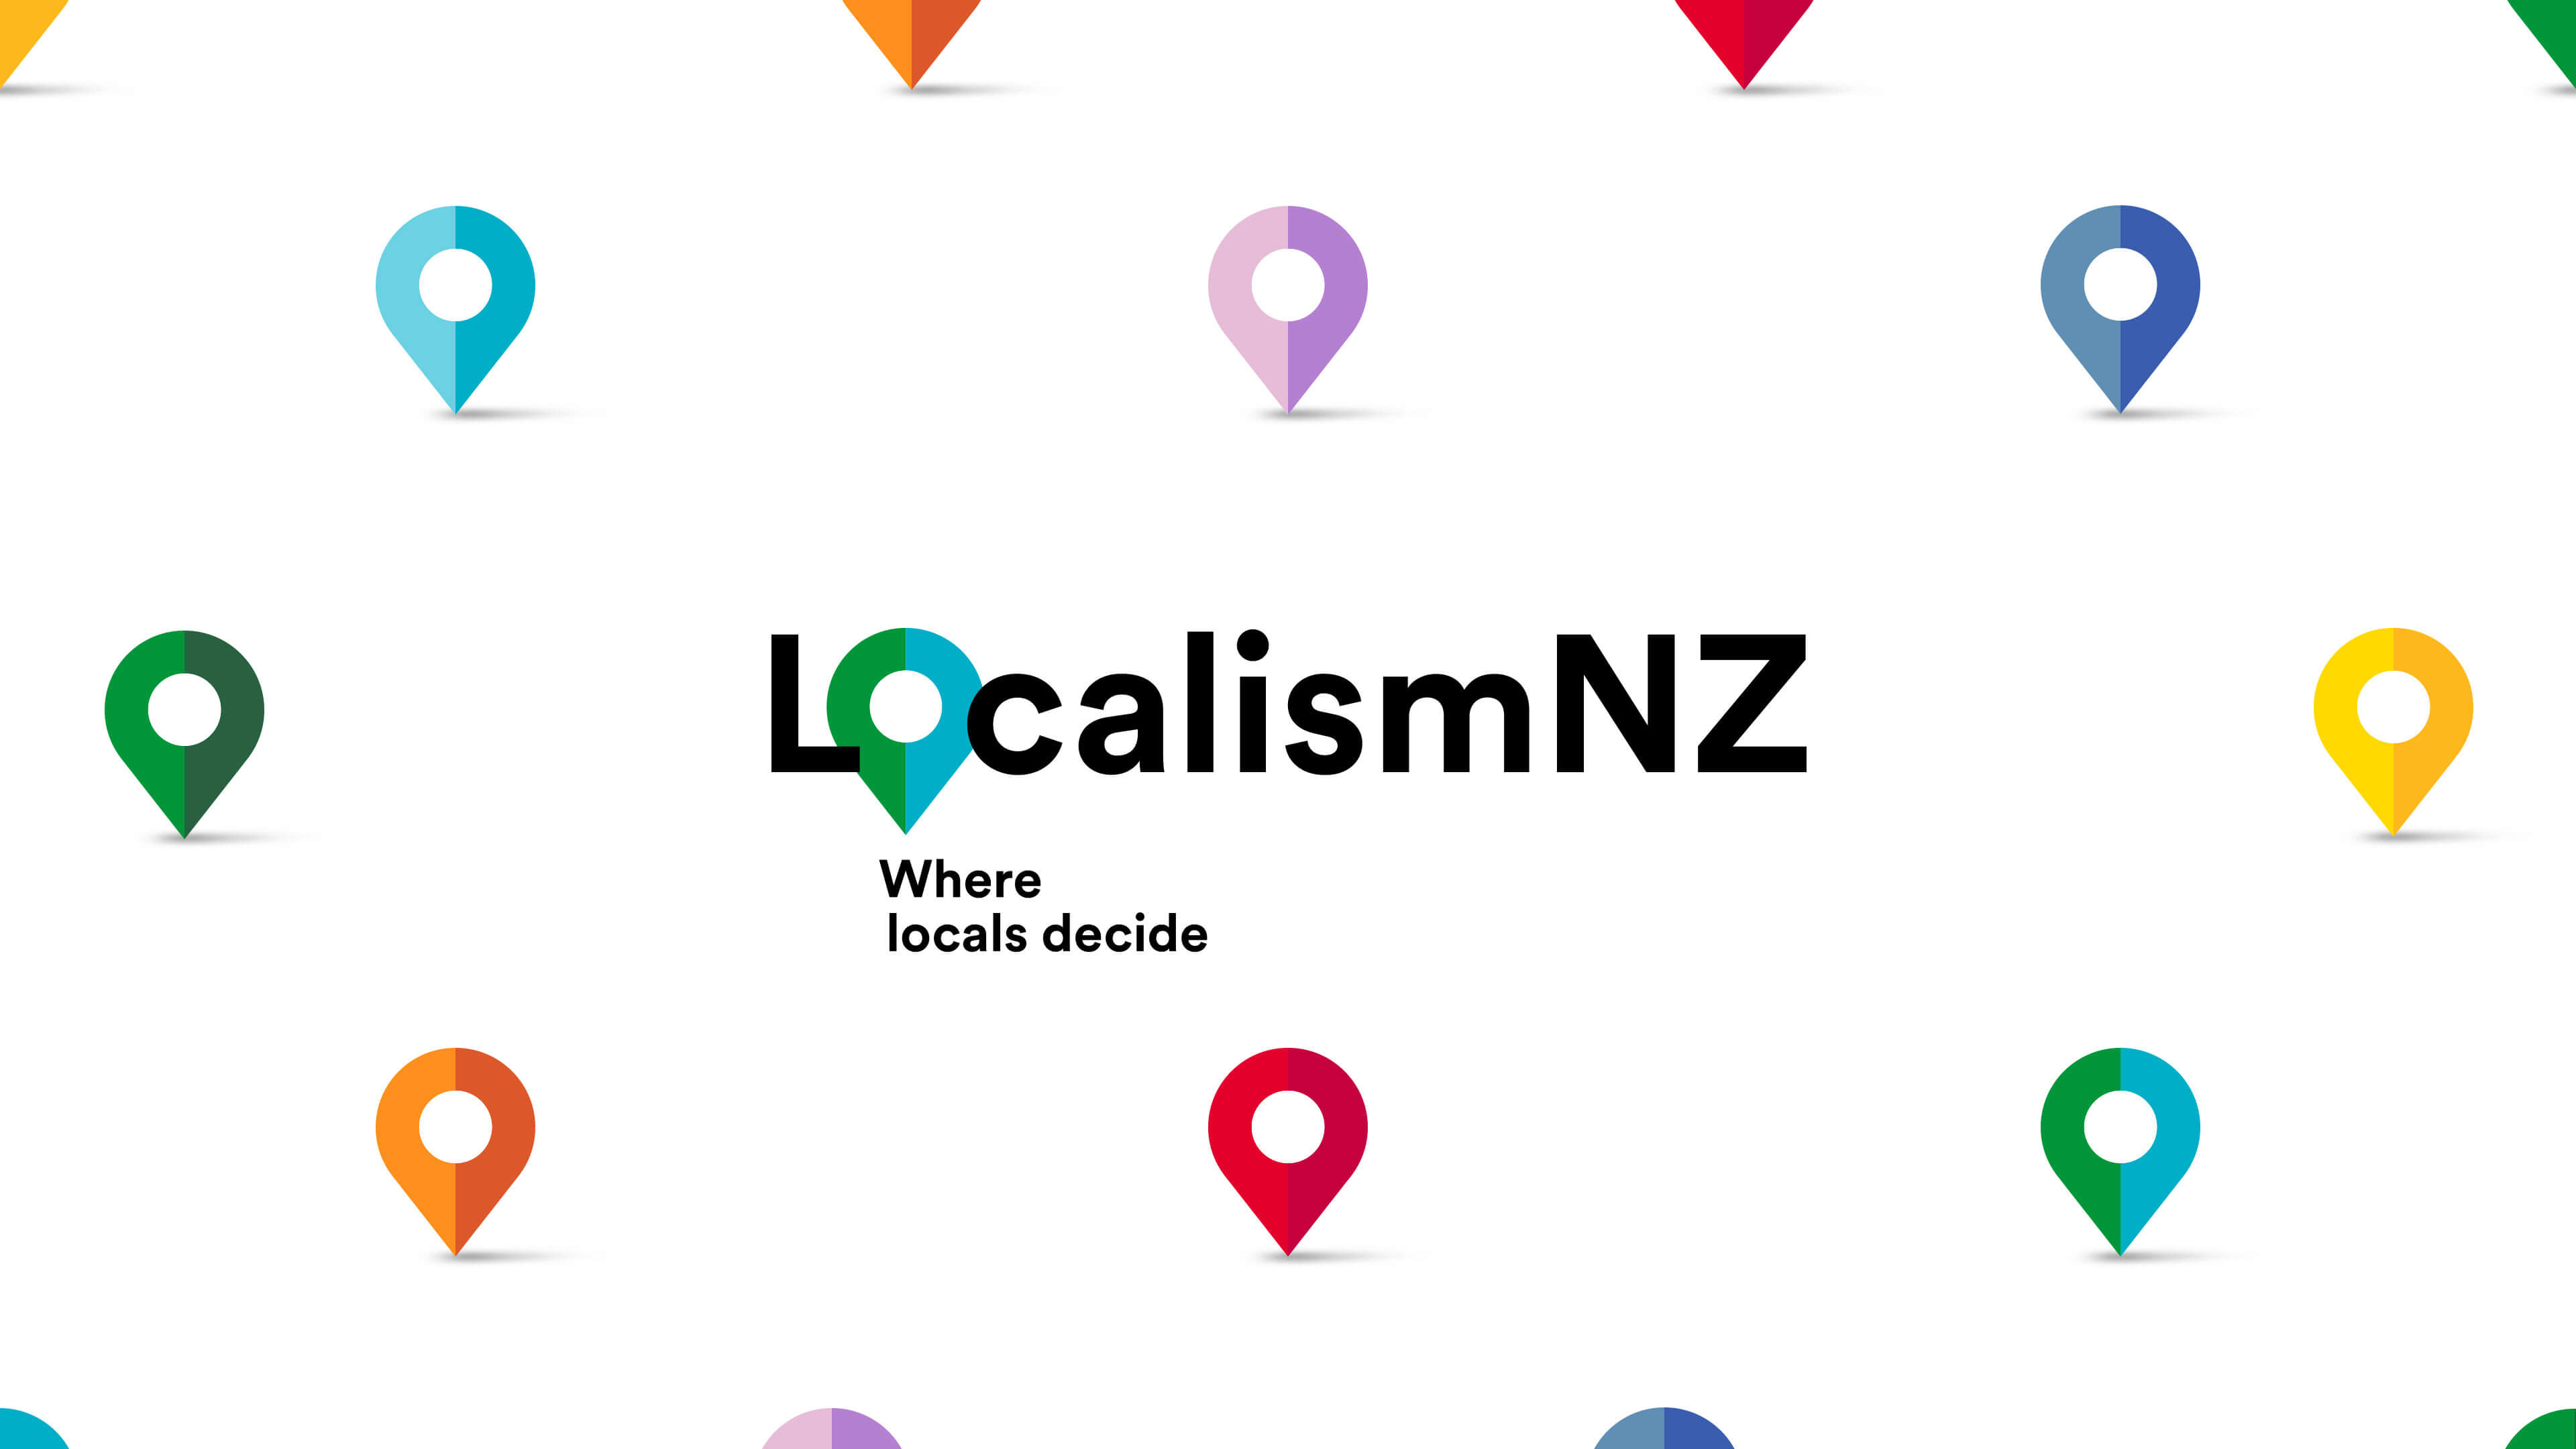 Local Government New Zealand (LGNZ) - Niels Hunefeld